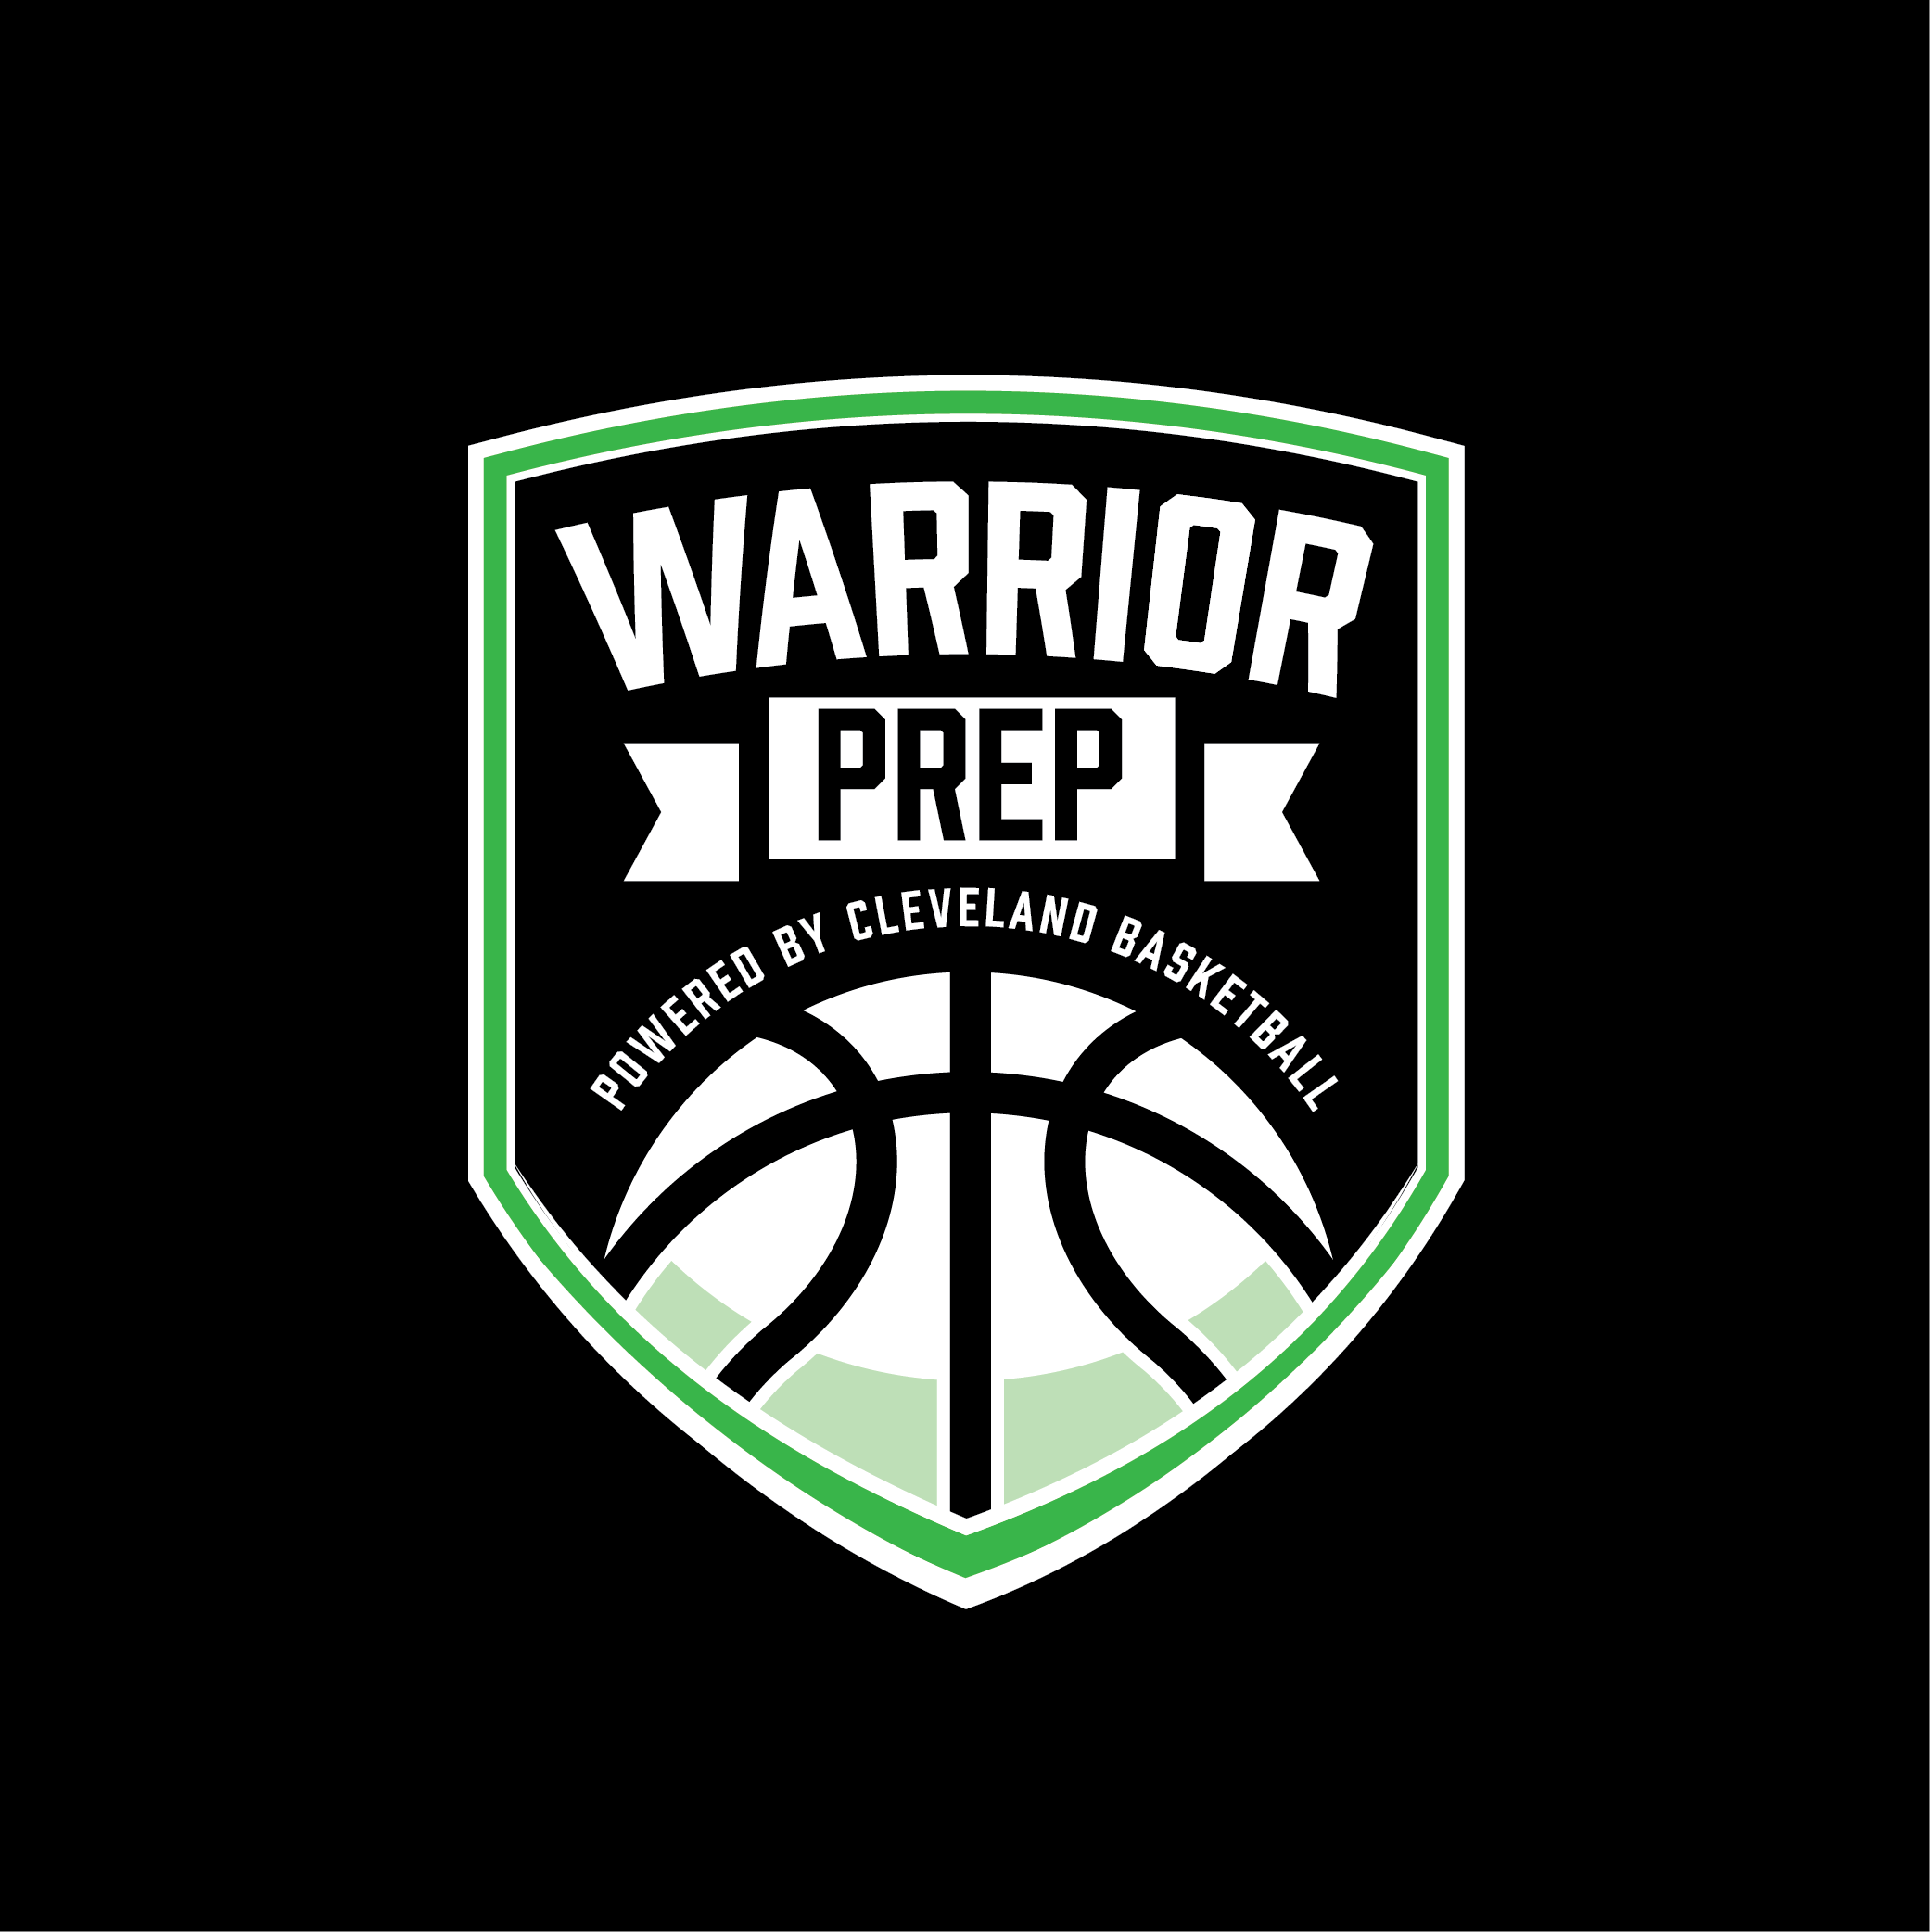 Warrior Prep Teams - (Advanced Skill)Grades 6th-8th1 team per gradeTRYOUTS: $10Tryout Date: Sunday August 253:00-5:00 pm(tryout registration is required)